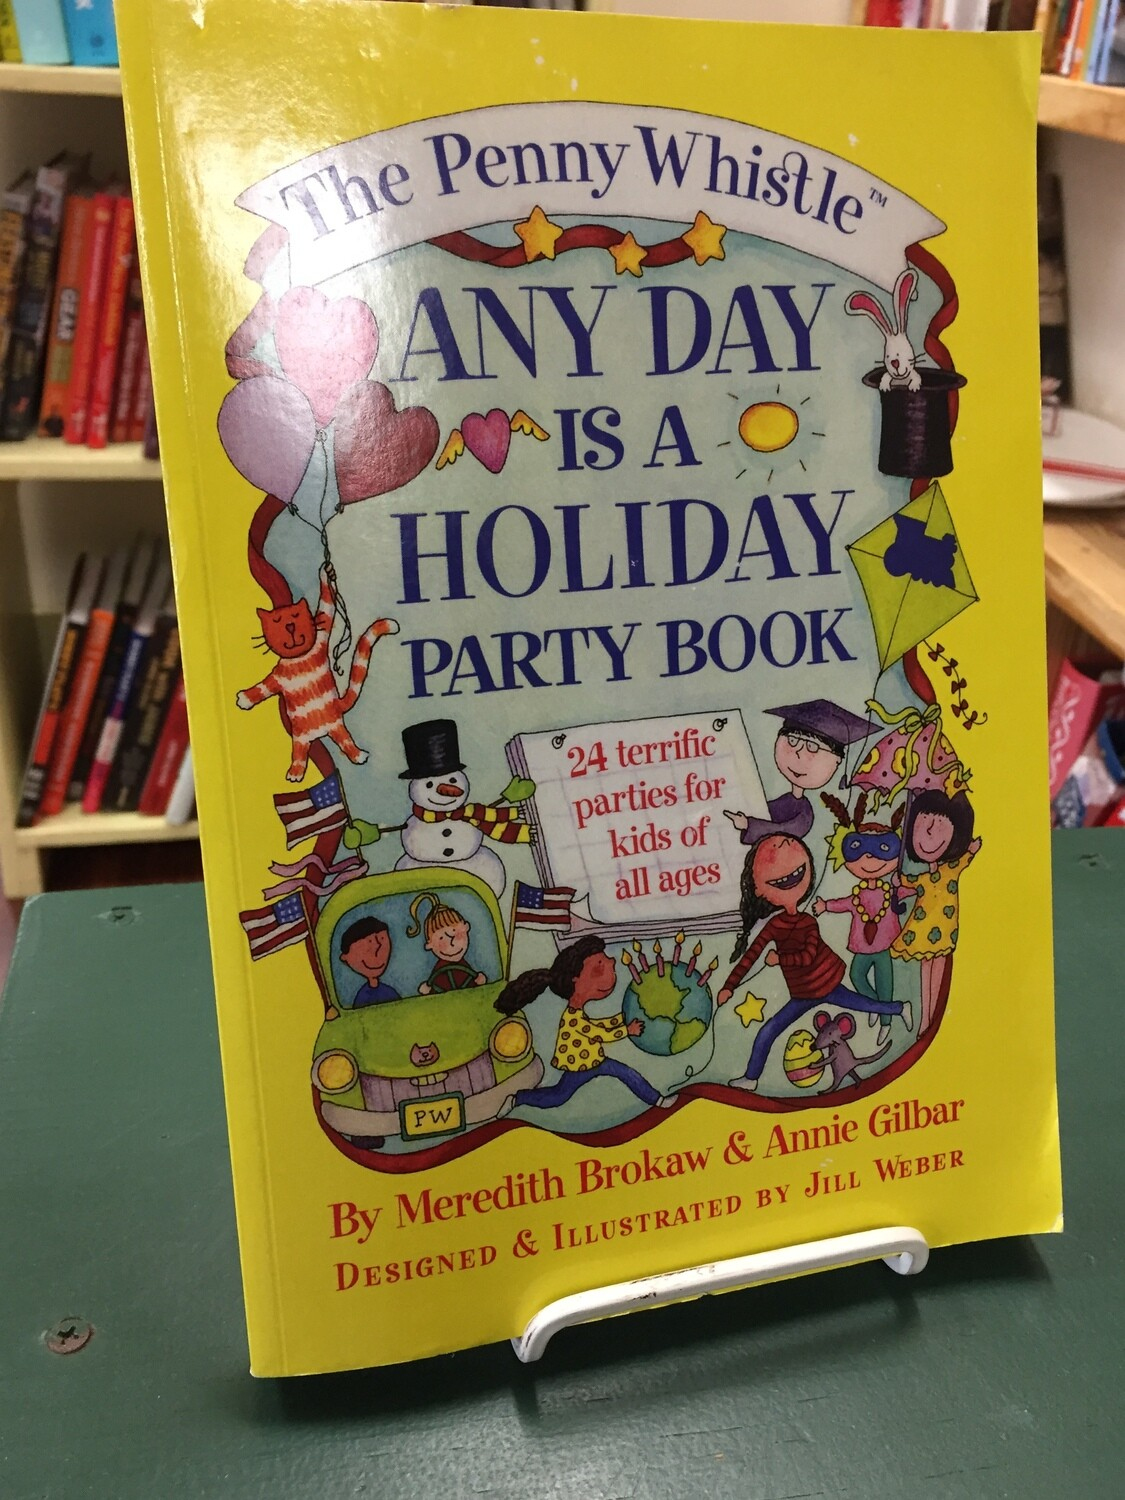 Any Day is a Holiday Party Book